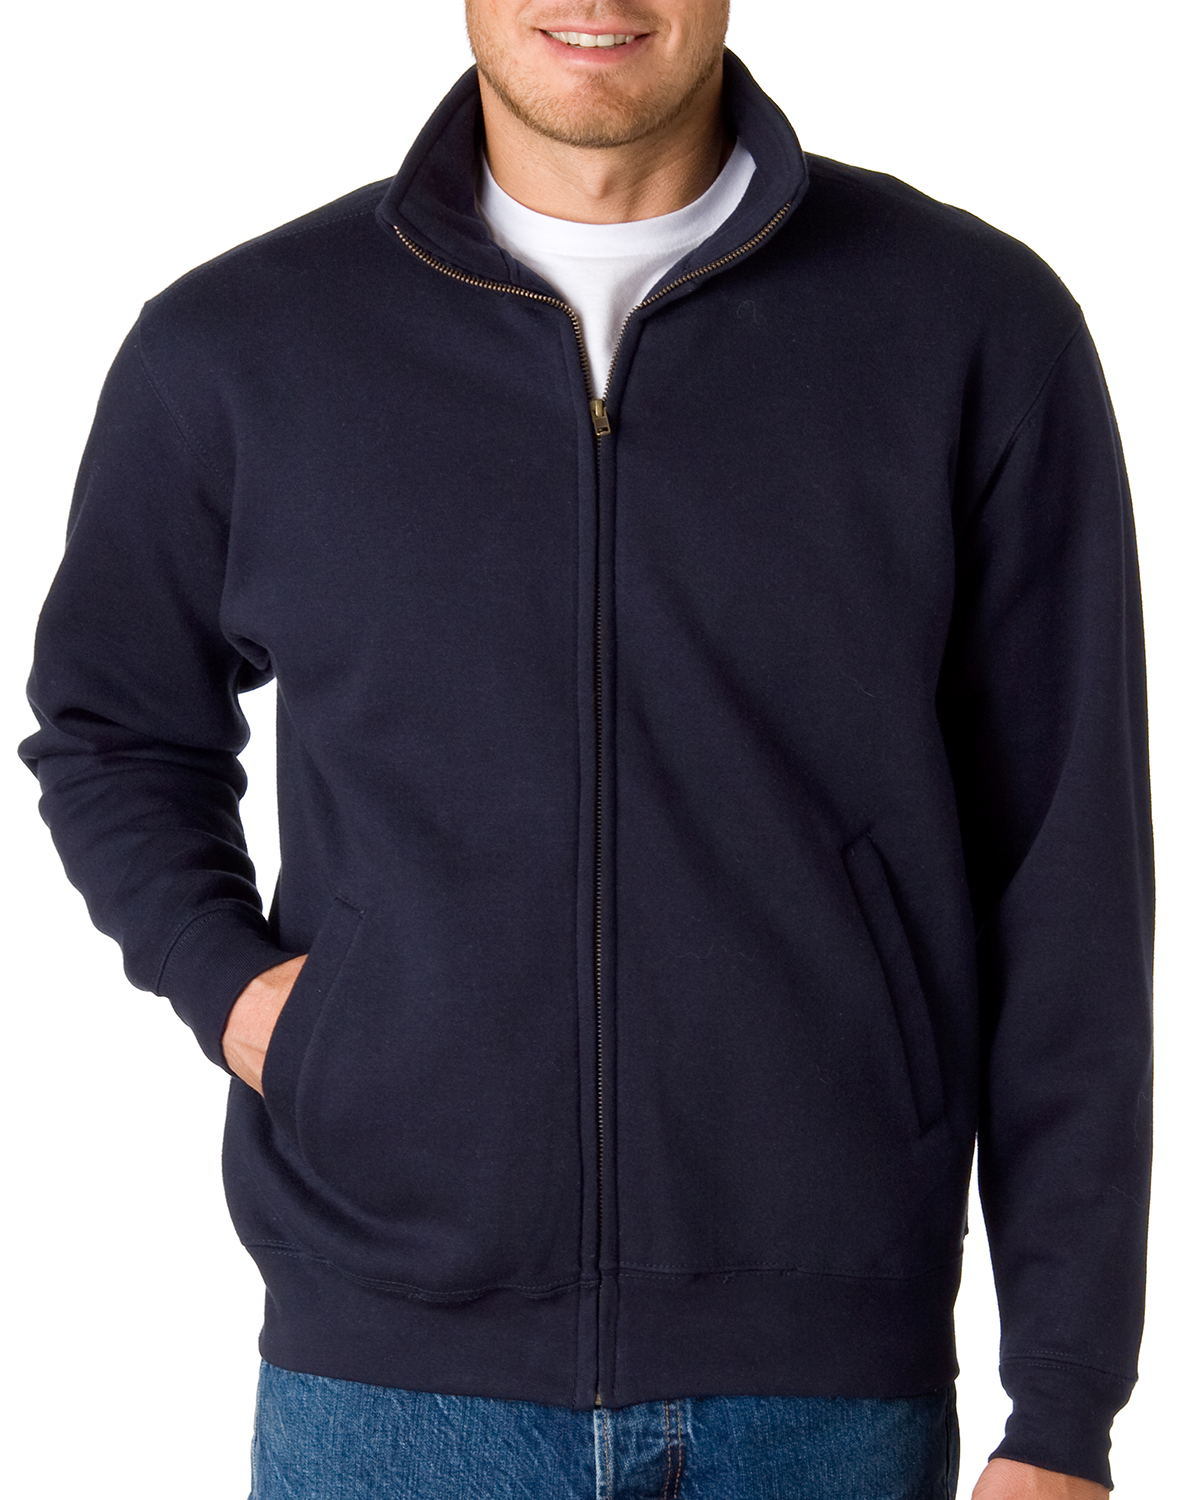 Weatherproof 7175 Cross-Weave Track Jacket